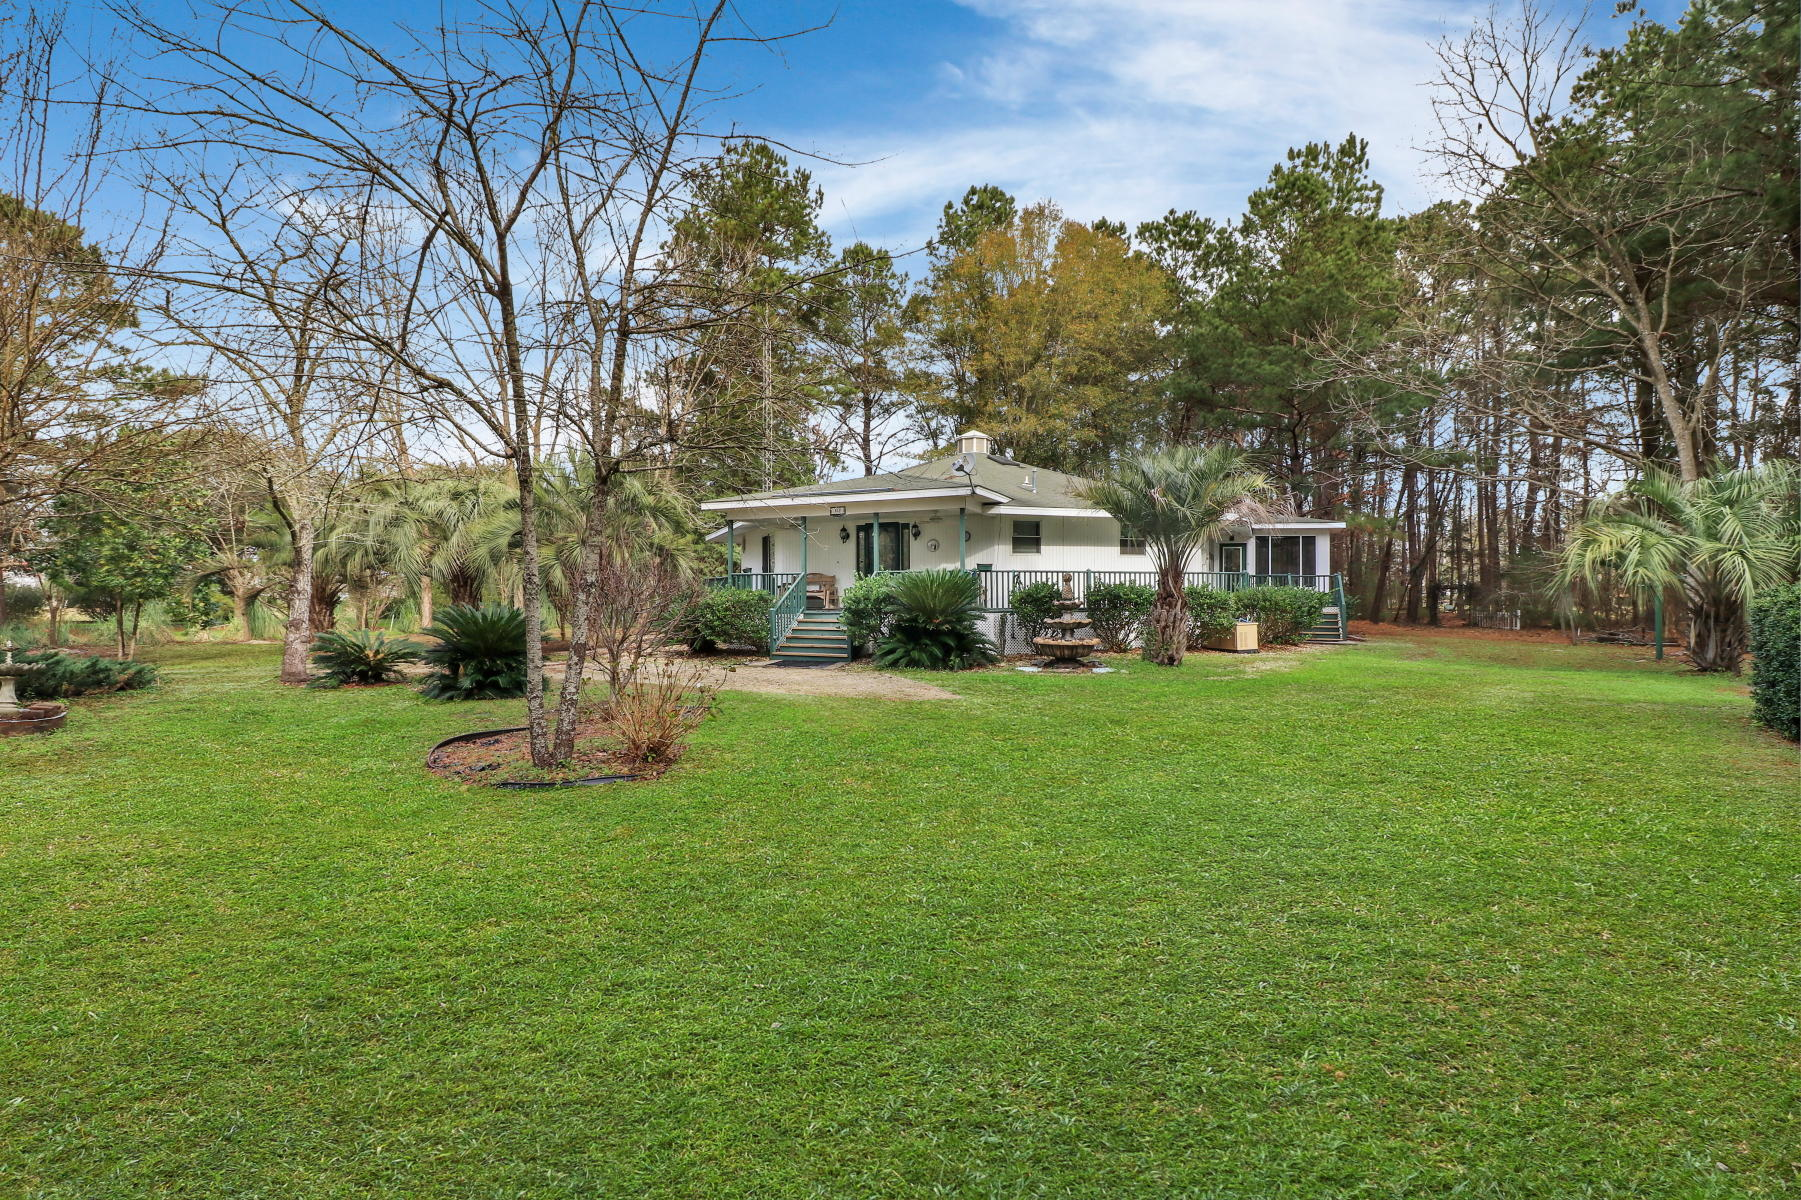 Plantation II Homes For Sale - 141 Meredith, Eutawville, SC - 17